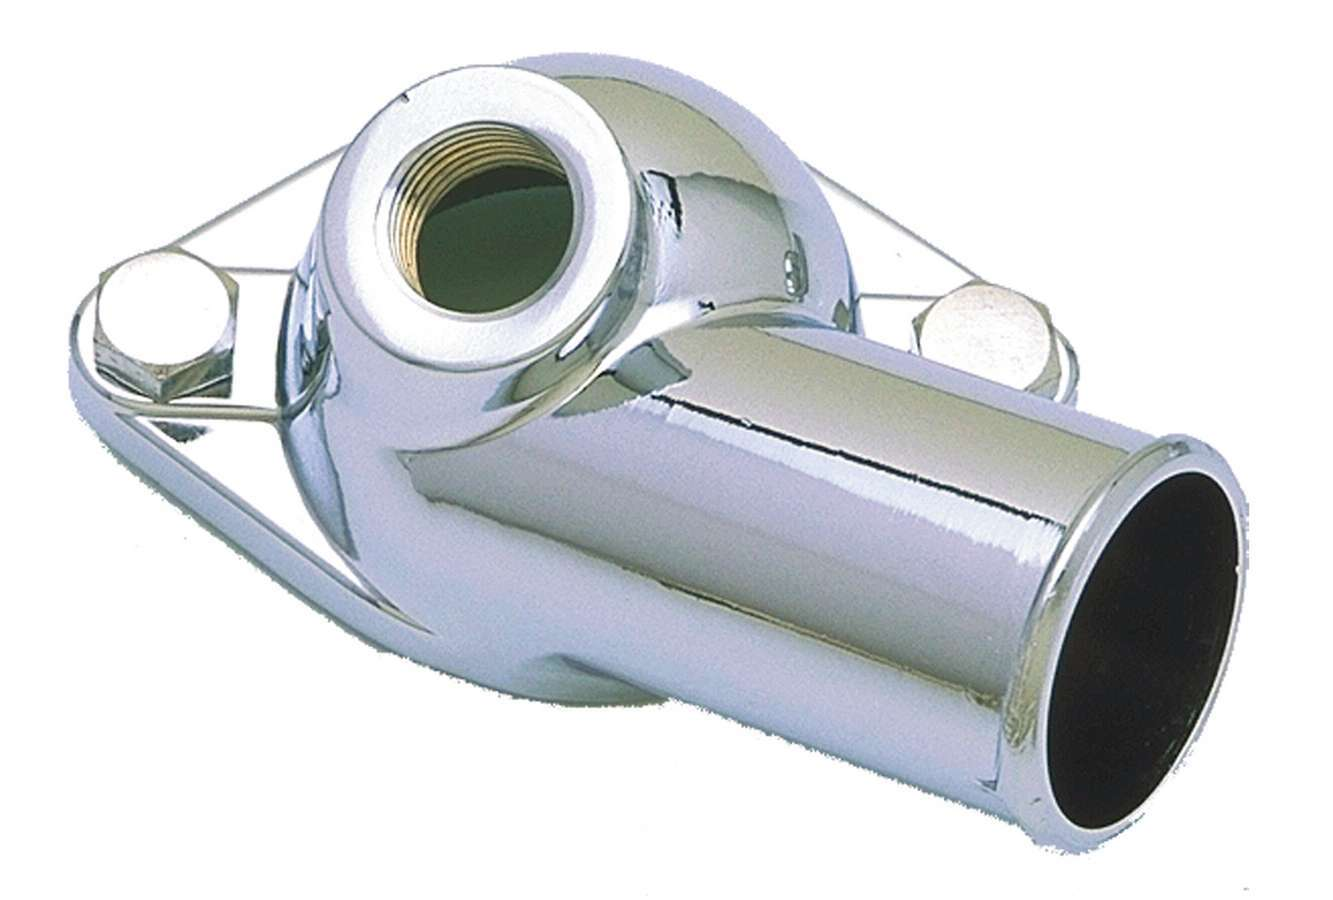 Trans Dapt 9468 Water Neck, 90 Degree, 1-1/2 in ID Hose, 1/2 in NPT Female Port, O-Ring, Hardware Included, Steel, Chrome, Chevy V8, Each